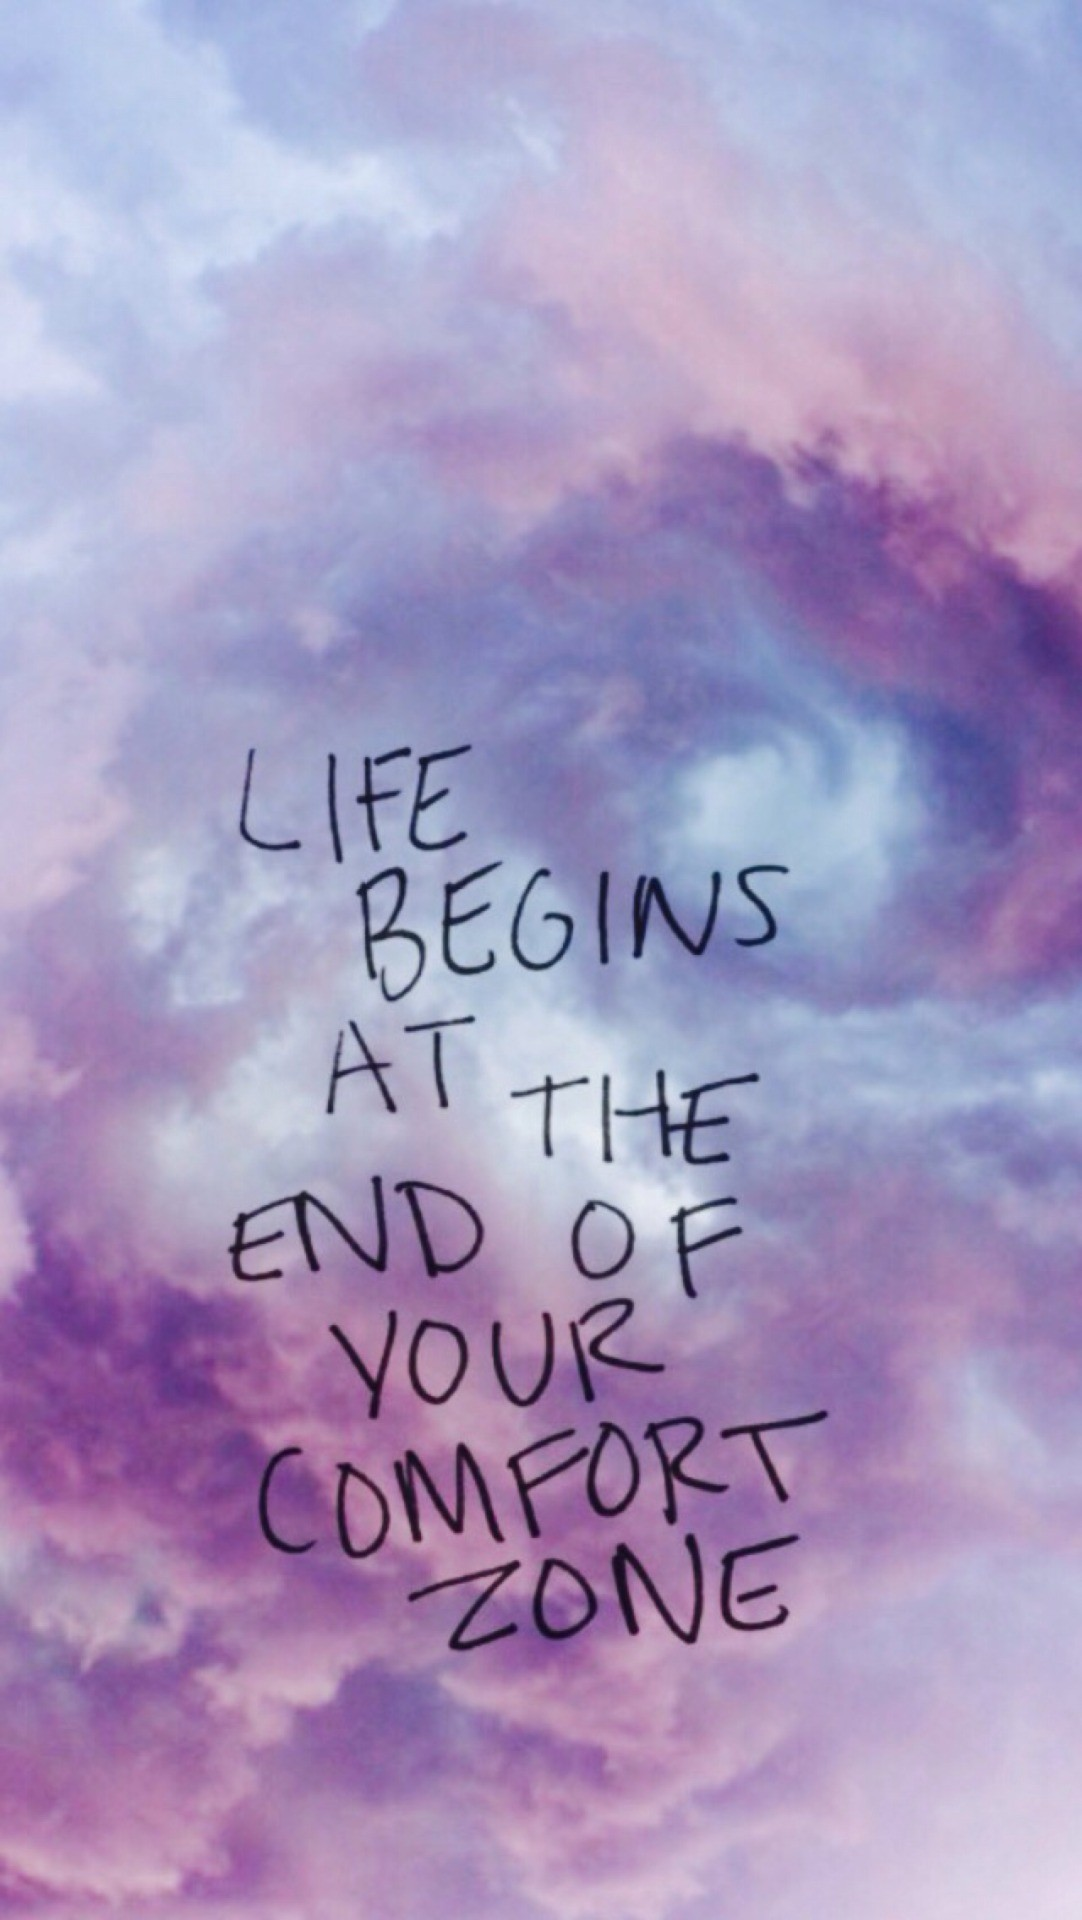 1082x1920, - Life Begin At The End Of Your Comfort Zone - HD Wallpaper